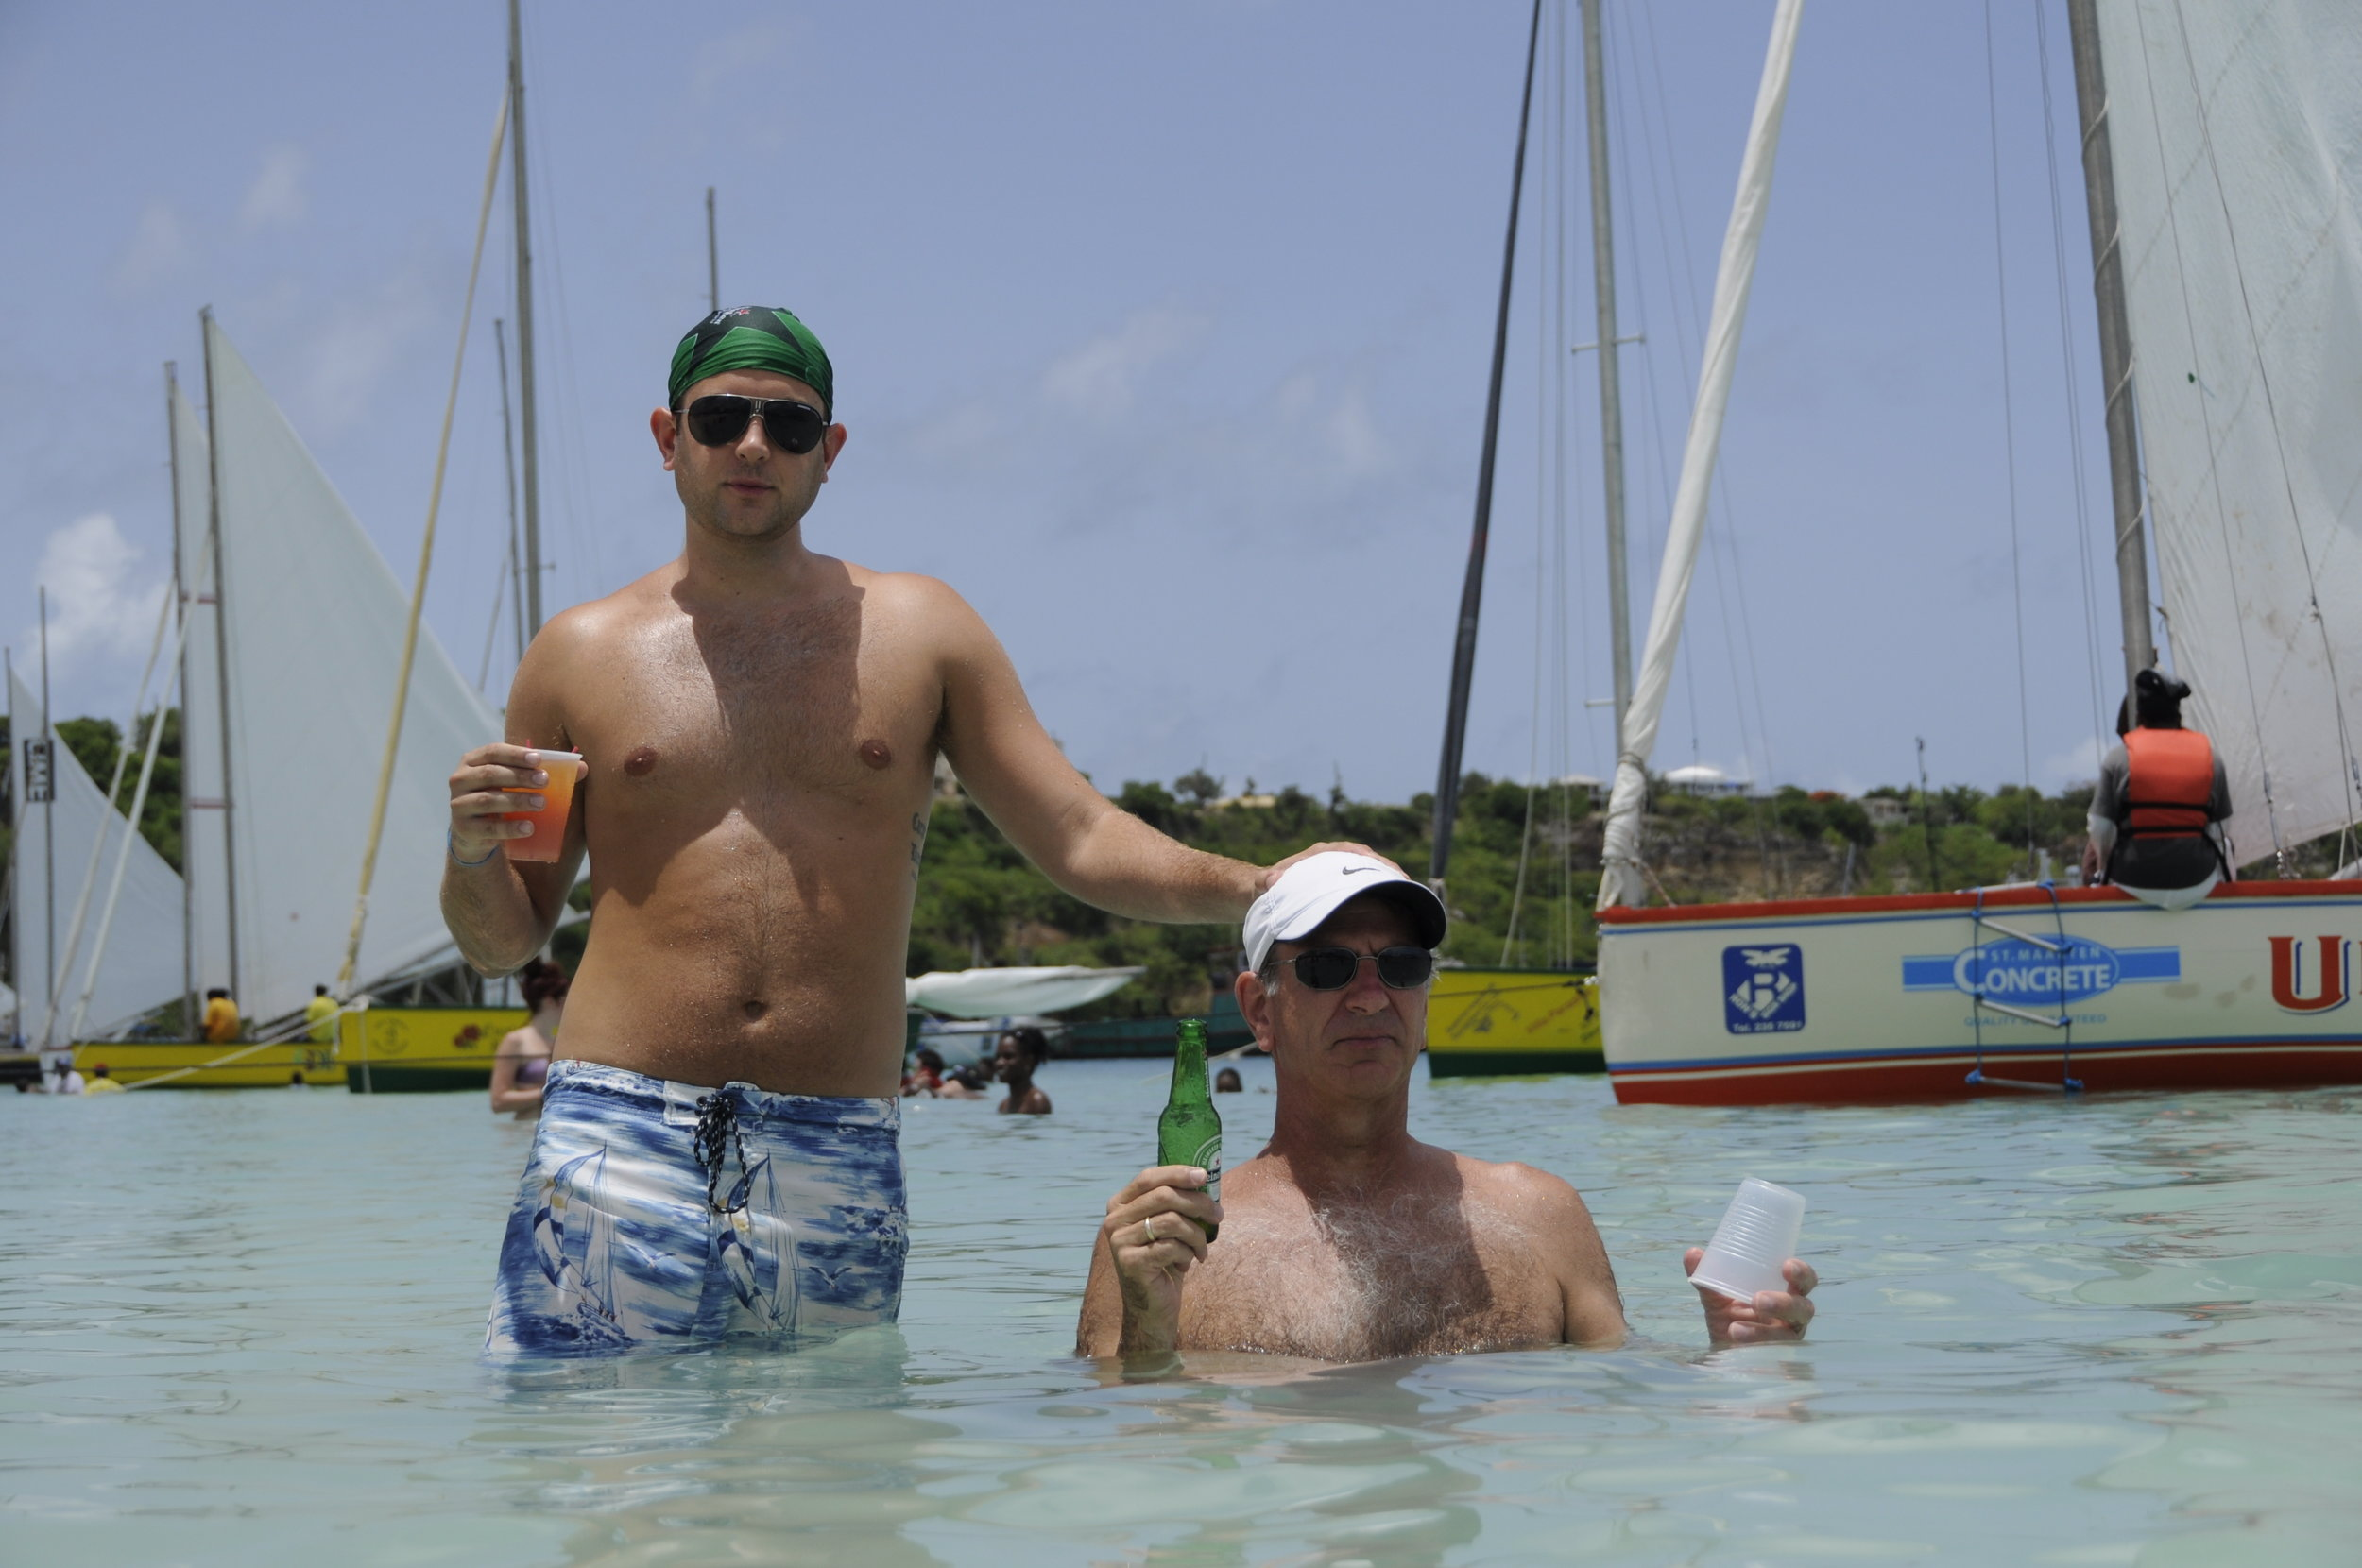 Jeff in Anguilla with his Peter, his father